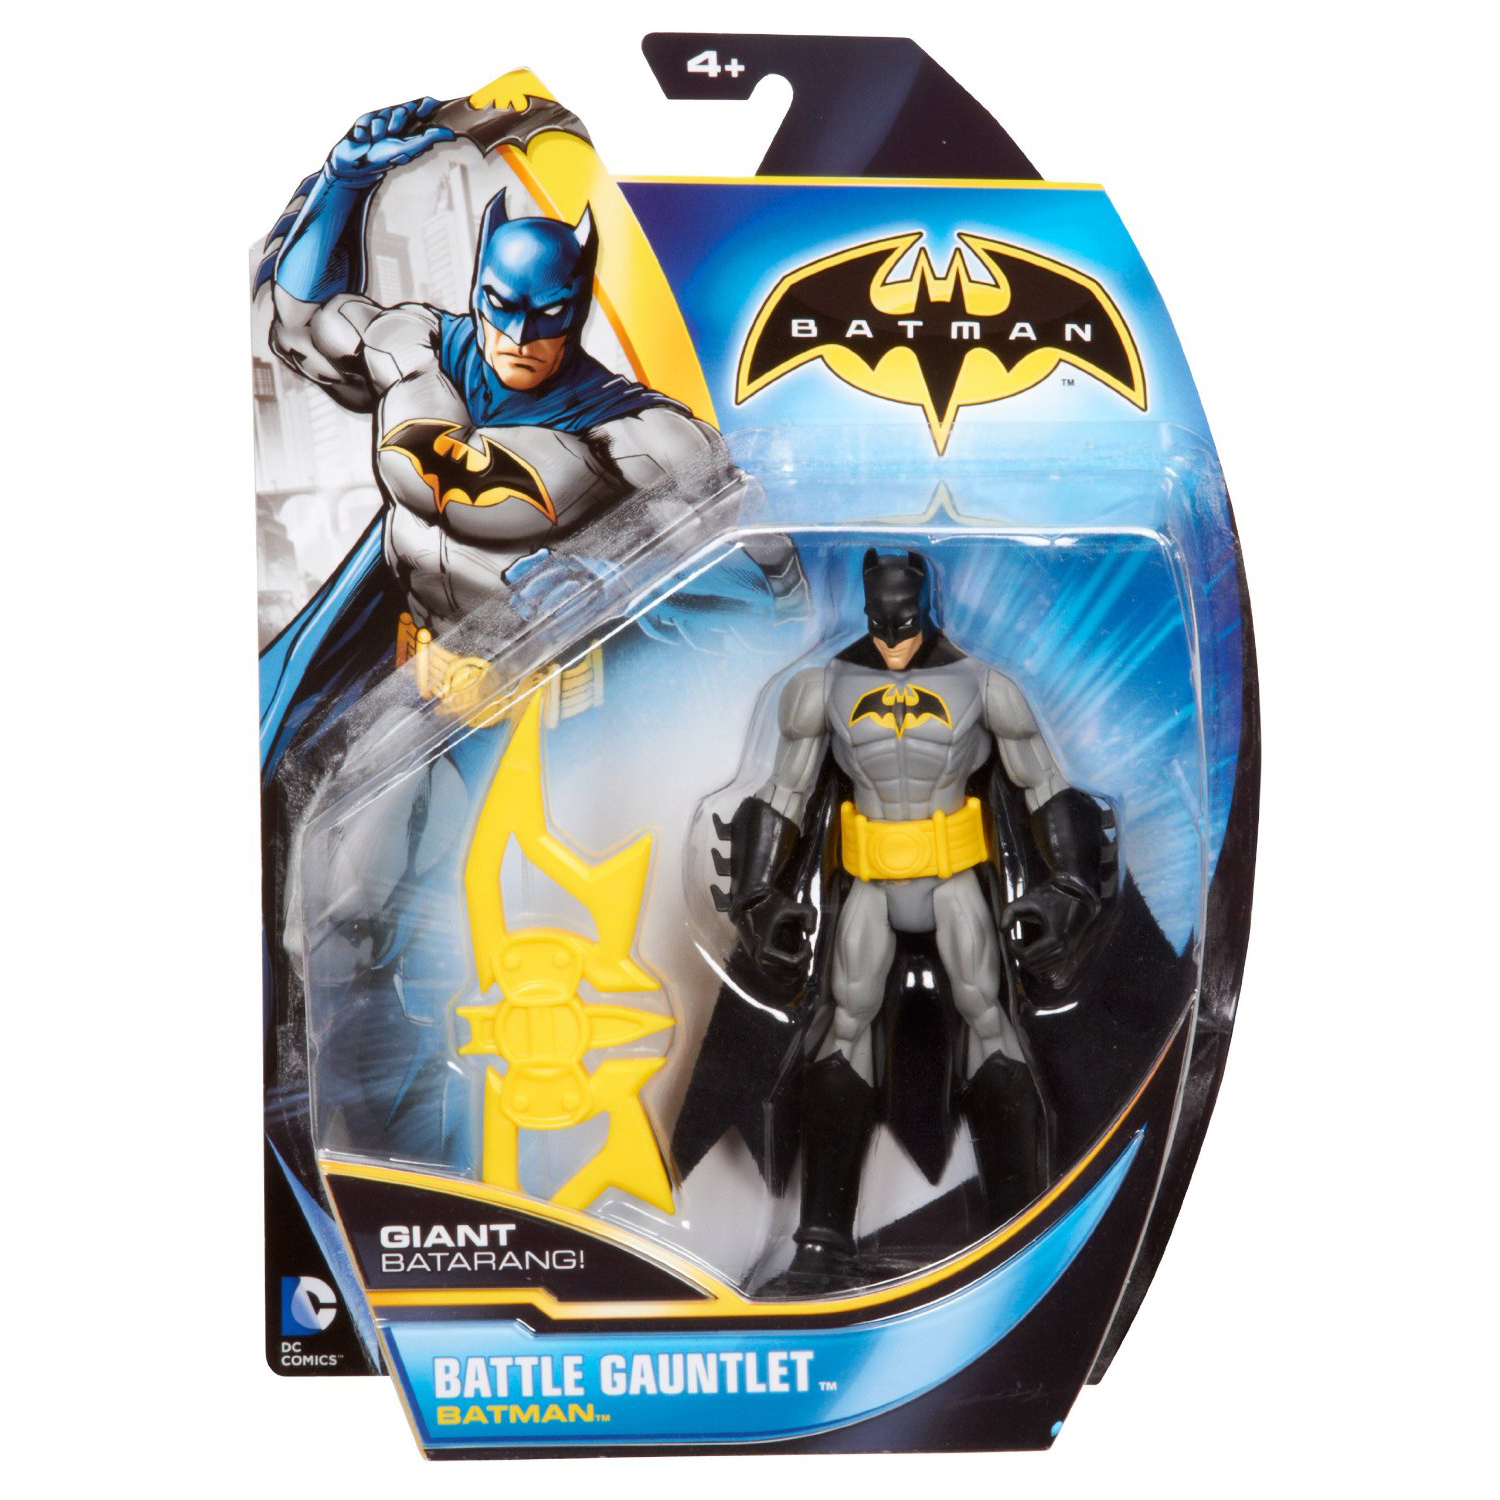 Batman Toys For Kids : Batman toys power strike battle guantlet at toystop